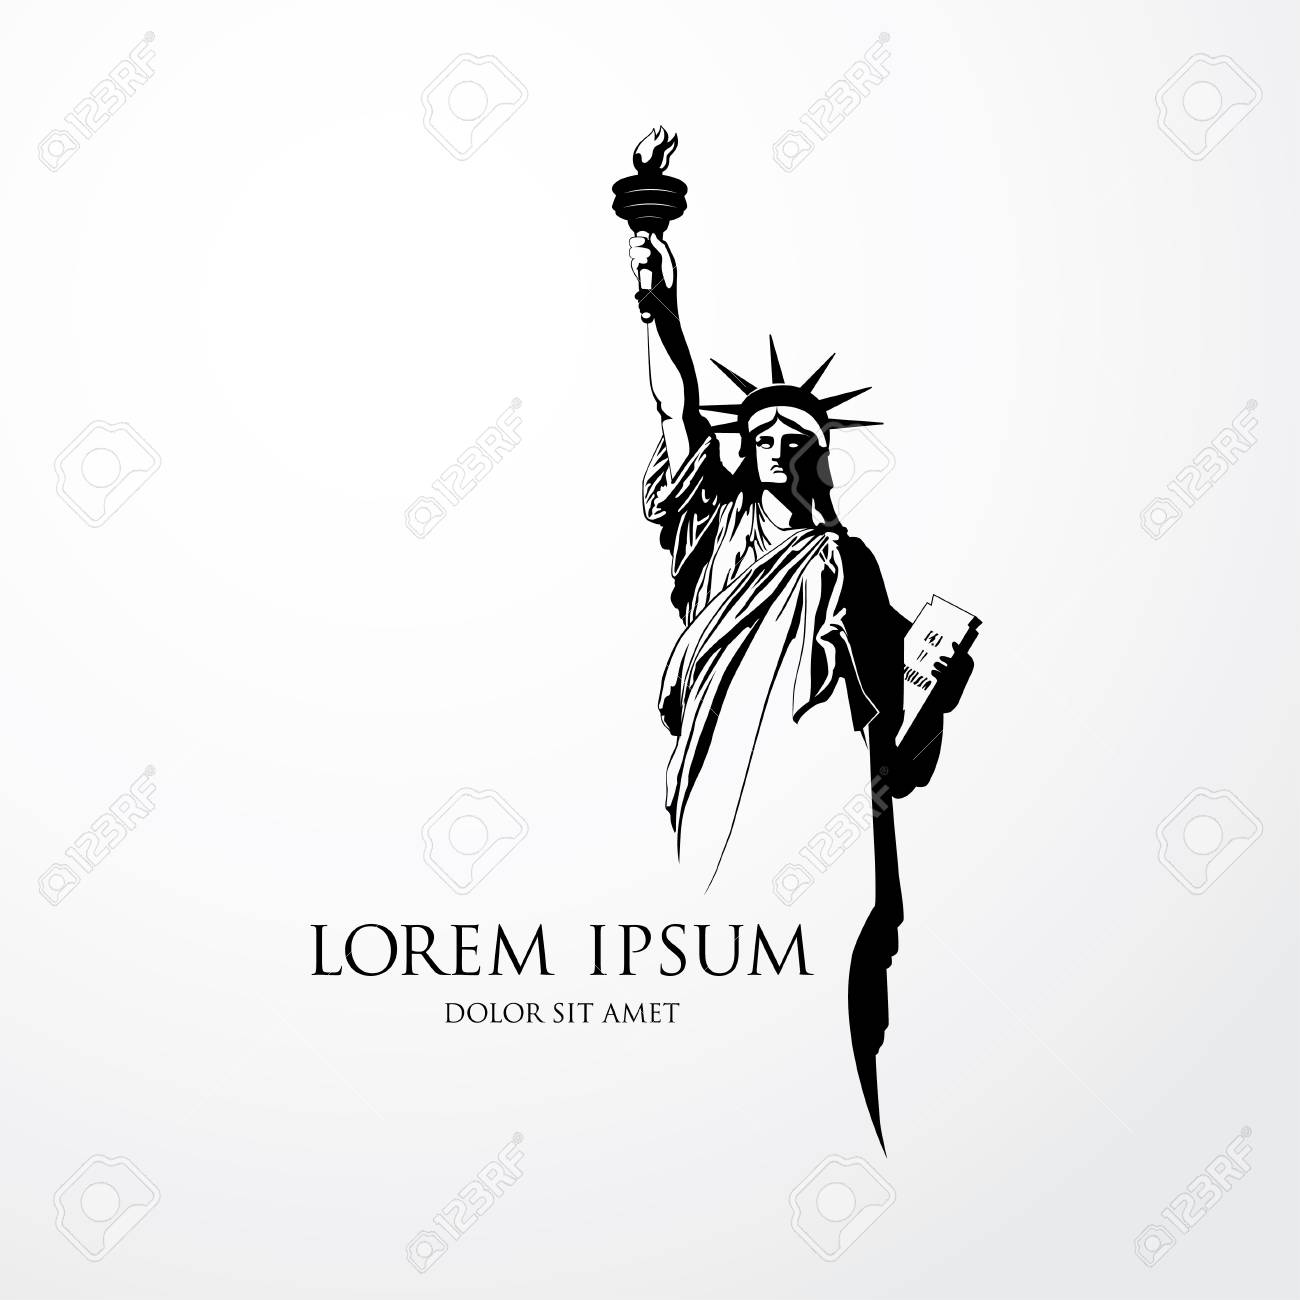 the statue of liberty vector illustration royalty free cliparts rh 123rf com statue of liberty vector free download statue of liberty vector silhouette